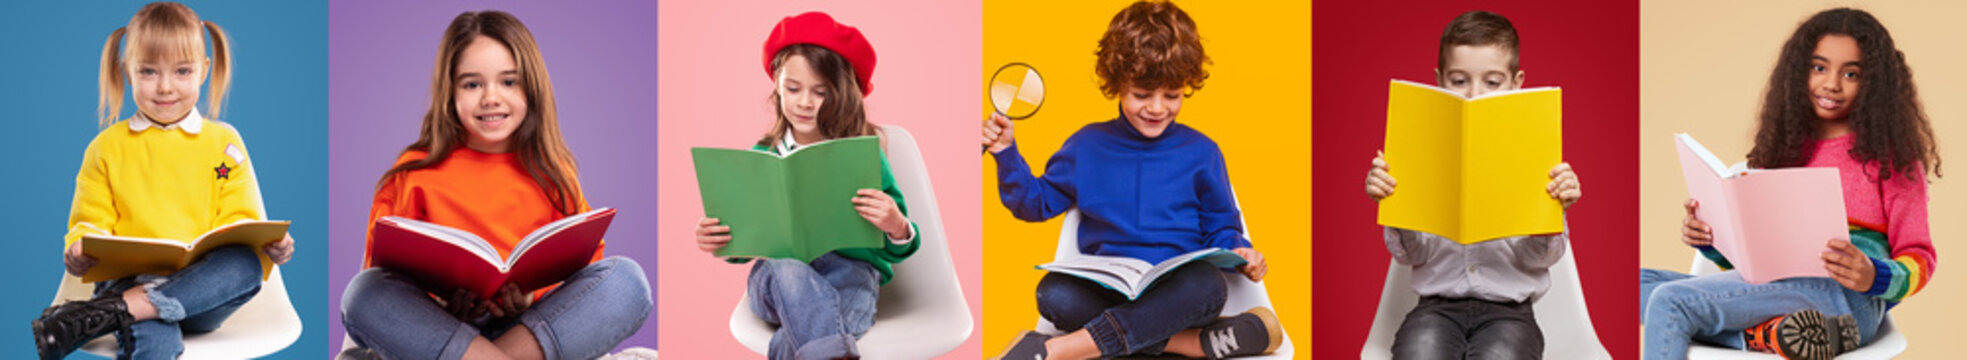 Happy pupils reading colorful books